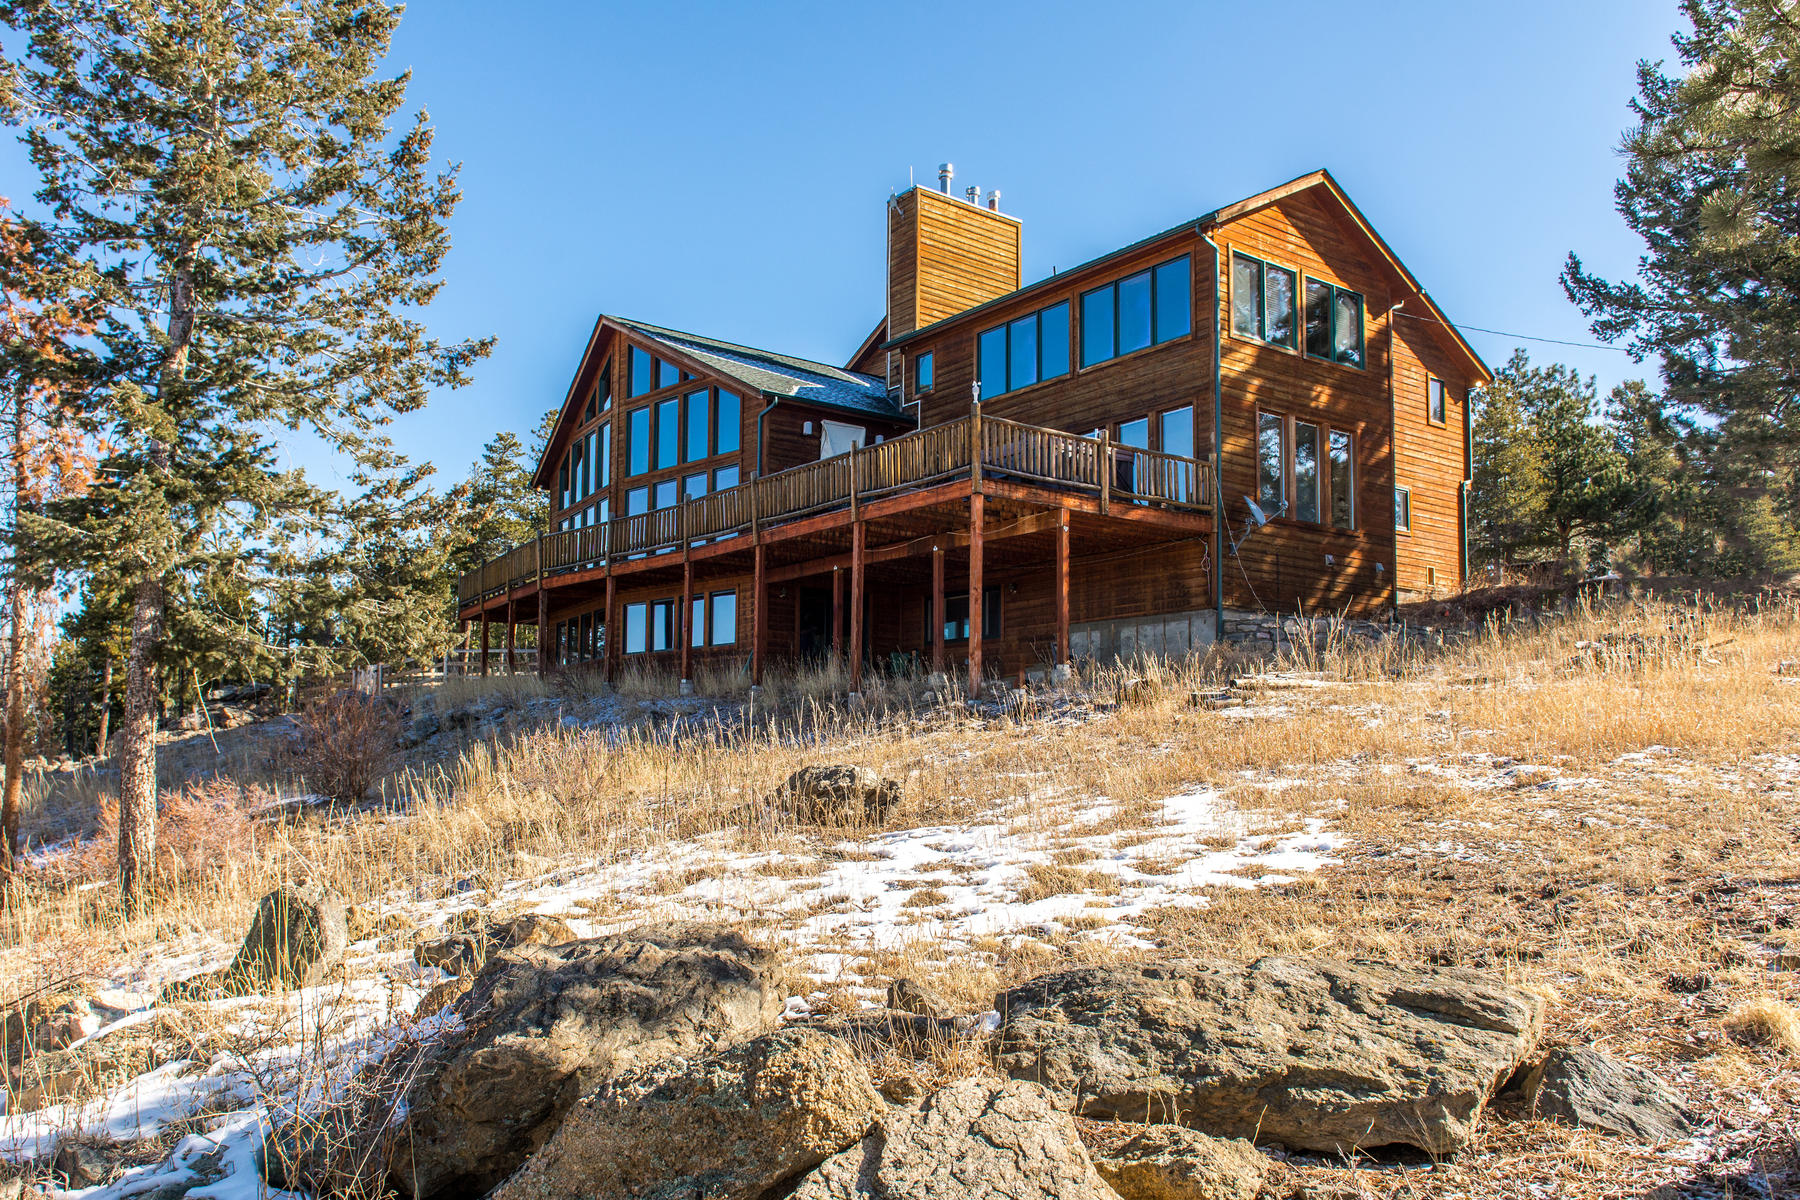 Single Family Home for Active at Top-of-the-World Panoramic Views 8485 Armadillo Trail Evergreen, Colorado 80439 United States